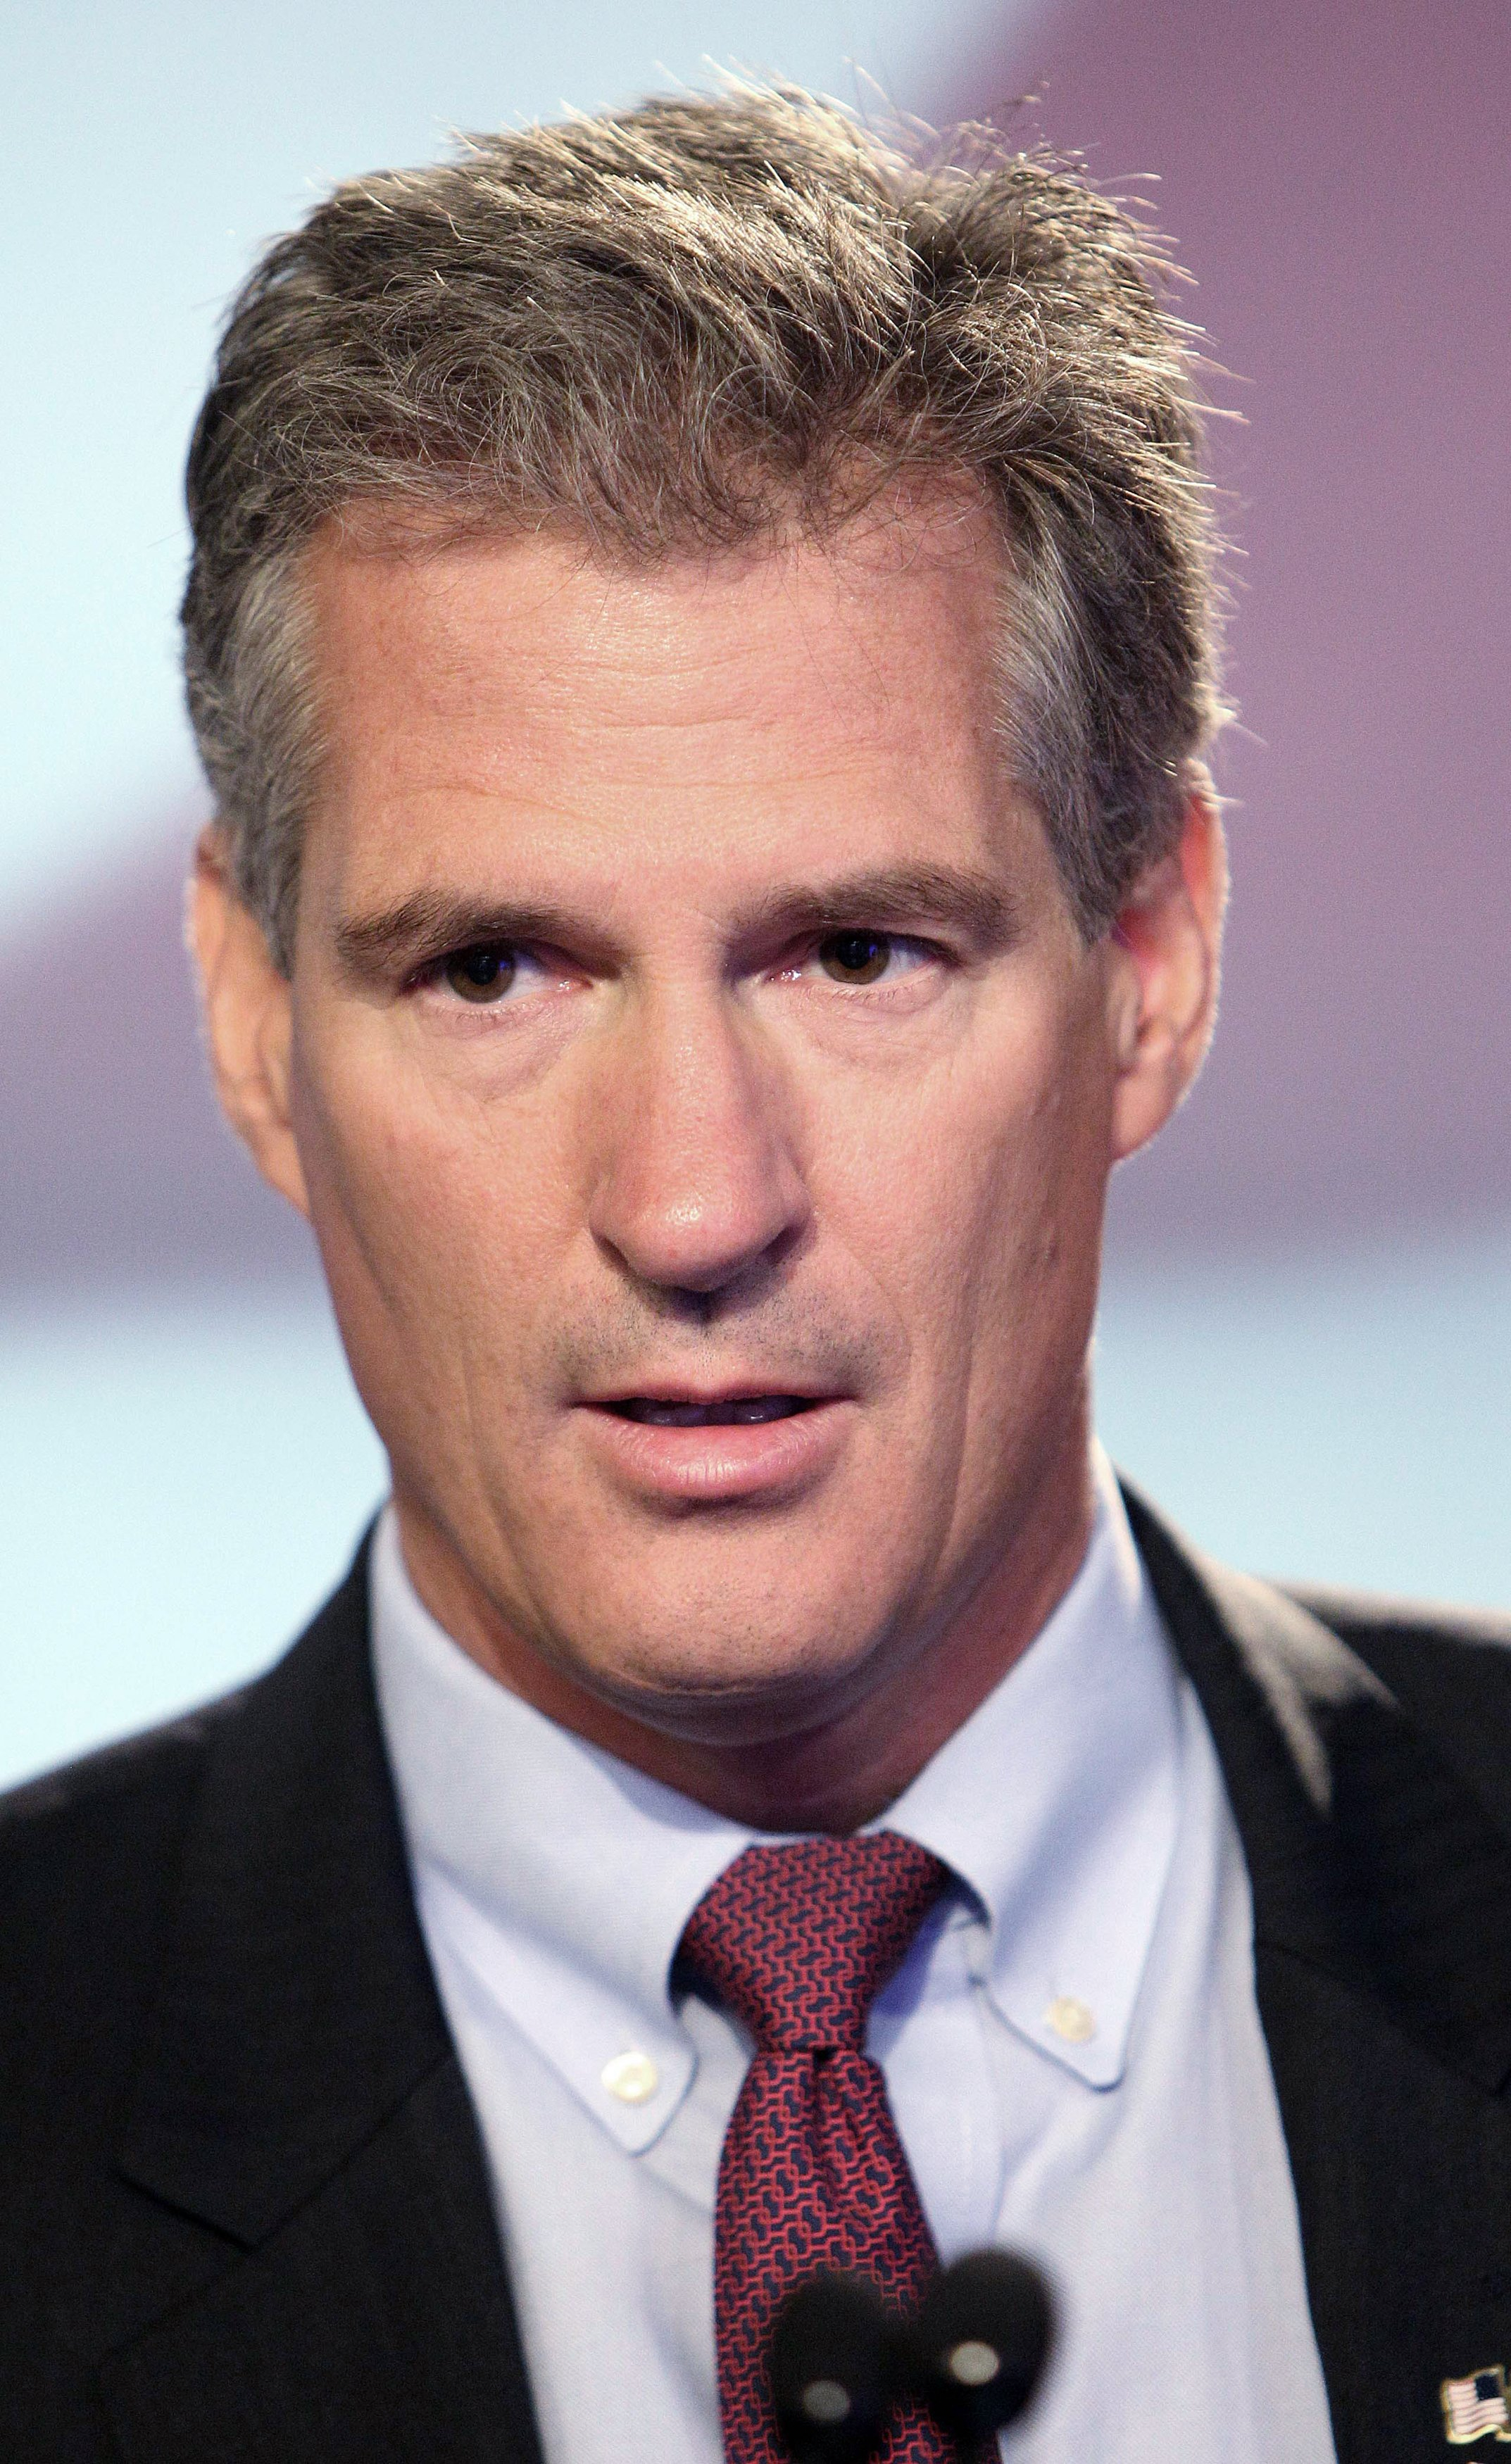 Former Republican U.S. Sen. of Mass. Scott Brown waits before a televised debate on Sept. 4, 2014 at WMUR in Manchester, N.H.